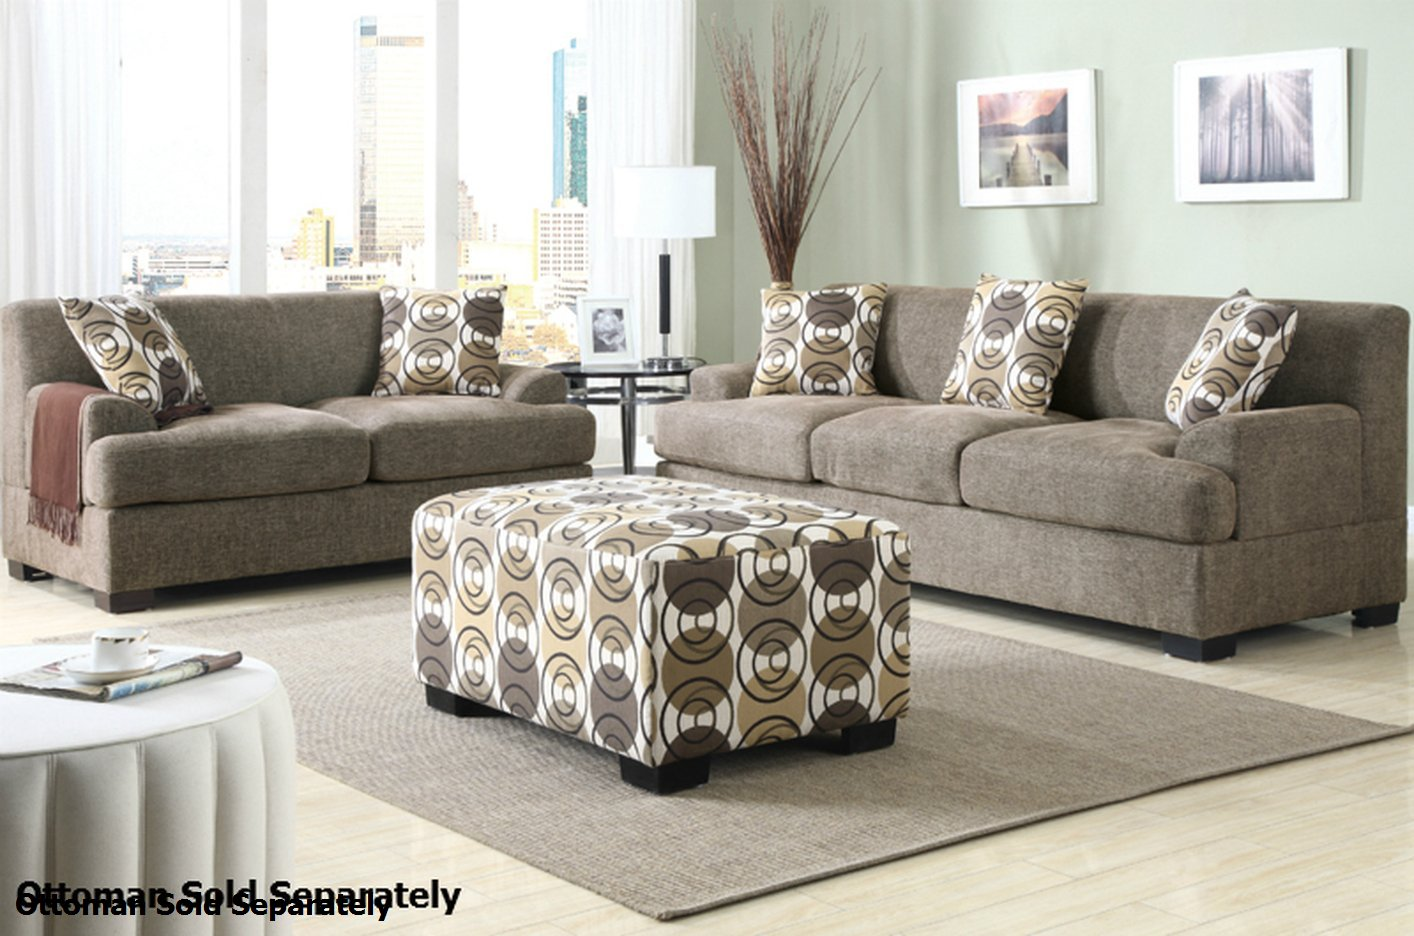 Poundex montreal f7450 f7449 beige fabric sofa and loveseat set steal a sofa furniture outlet Sofa loveseat